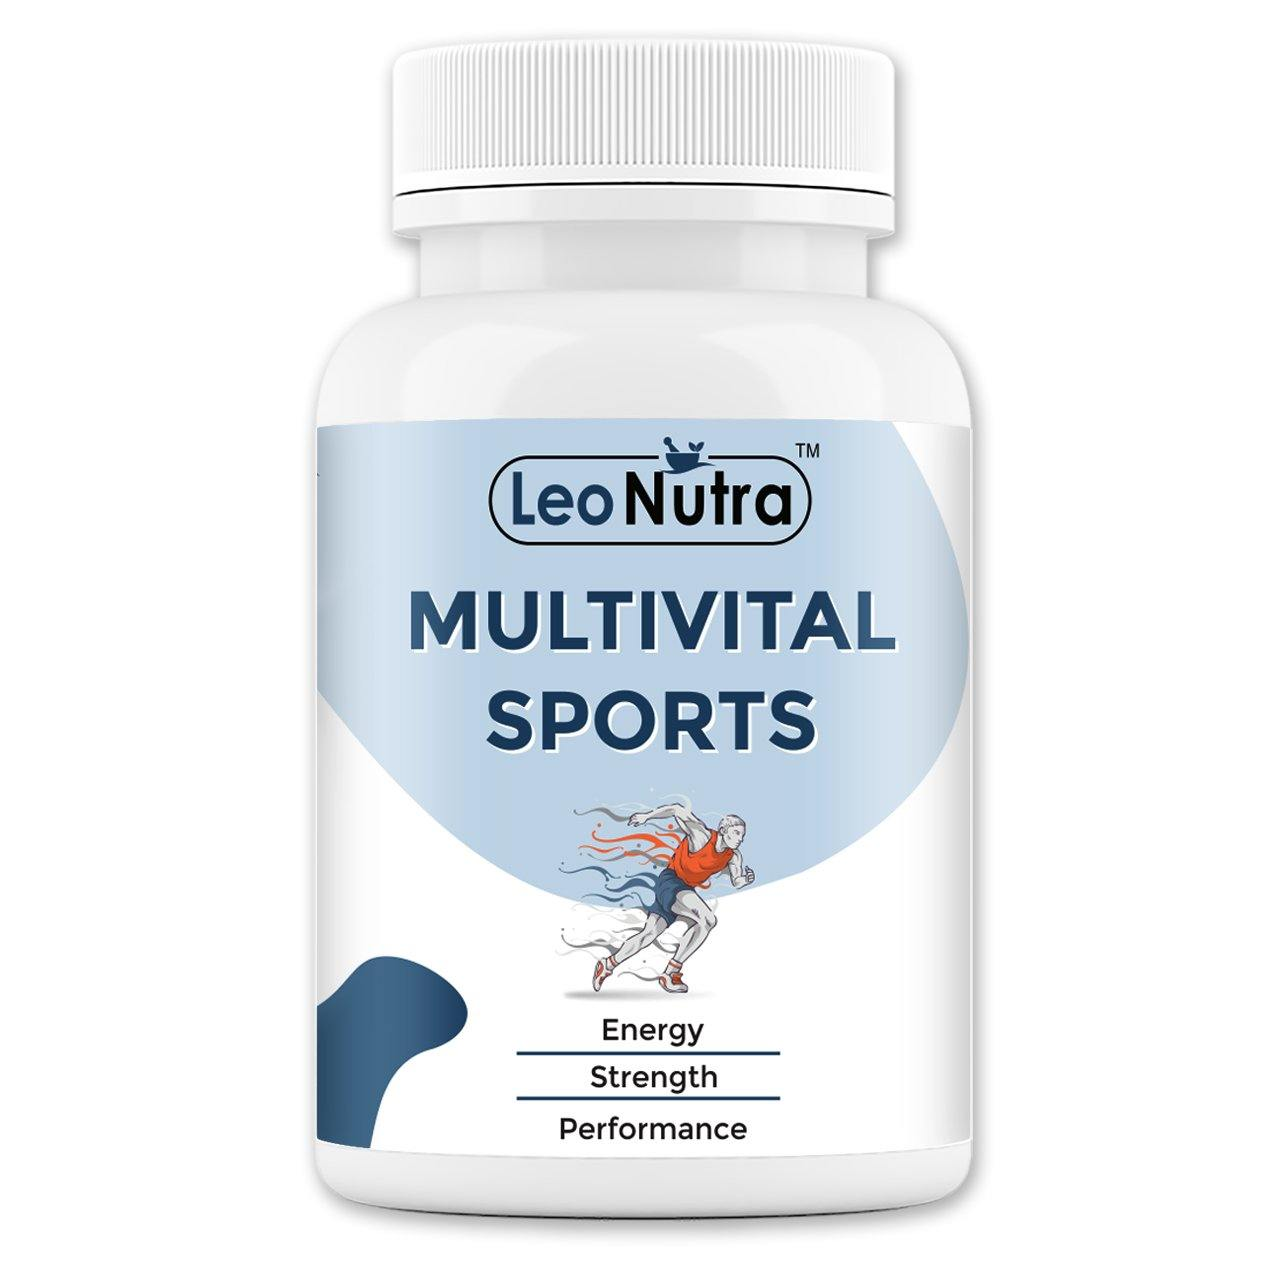 LeoNutra Multivital Tablets | MultiVitamin Sports with 60+ Nutrients - 90 Tablets | Vitamins, Minerals, Amino Acid, Probiotics